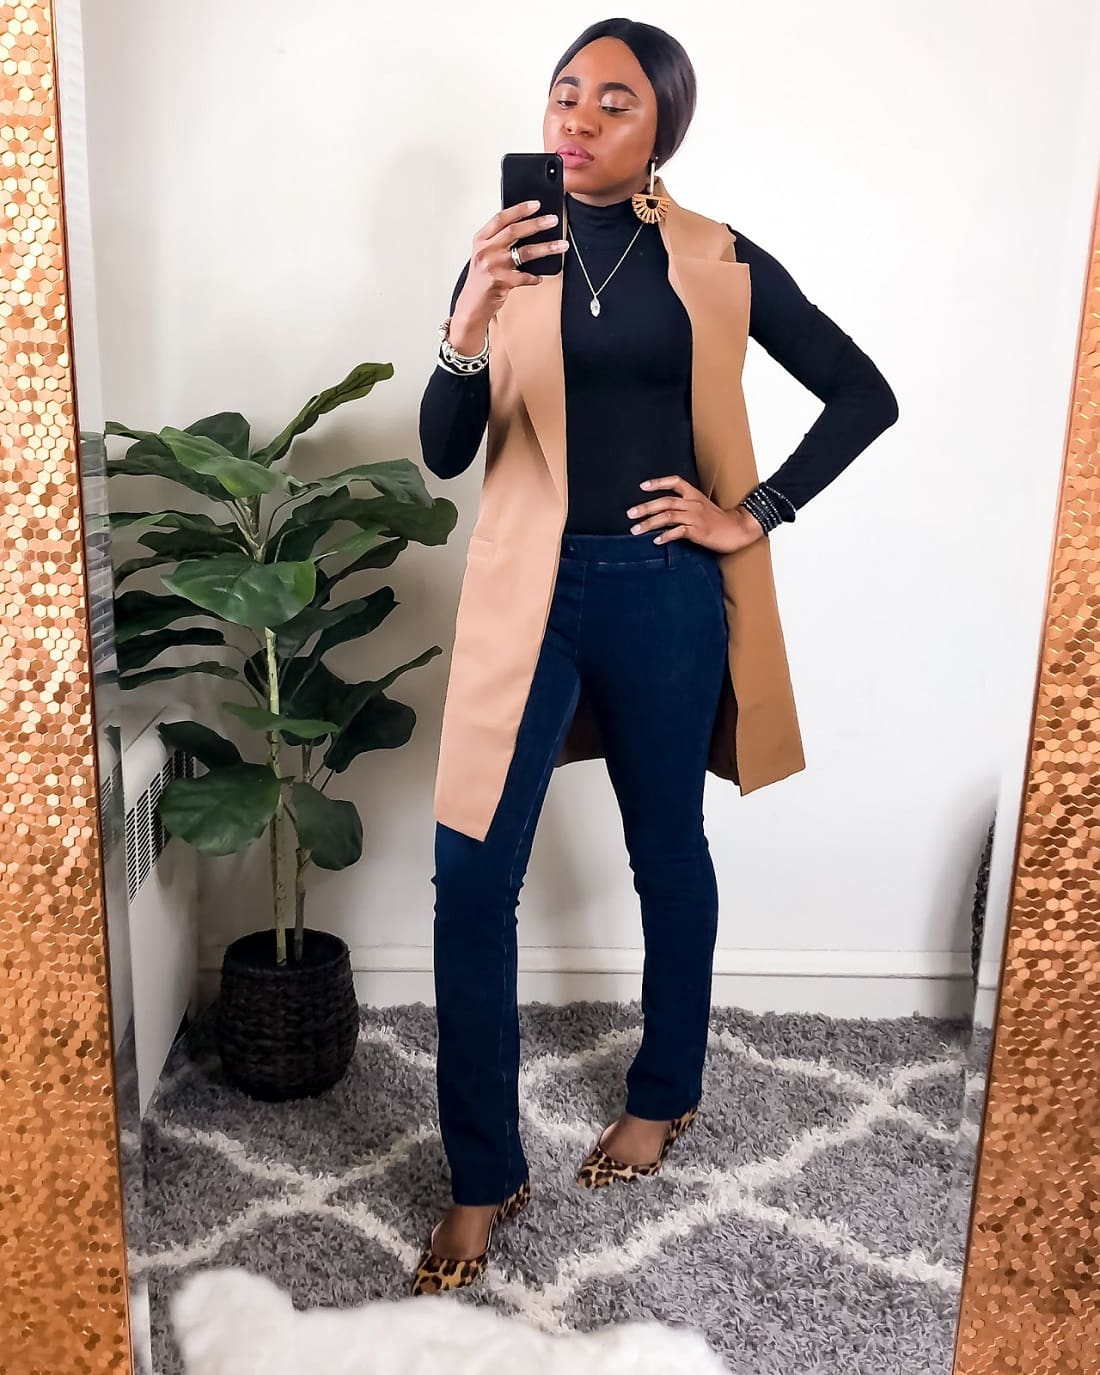 This Turtleneck and lapel jacket adds style to this Betabrand jean